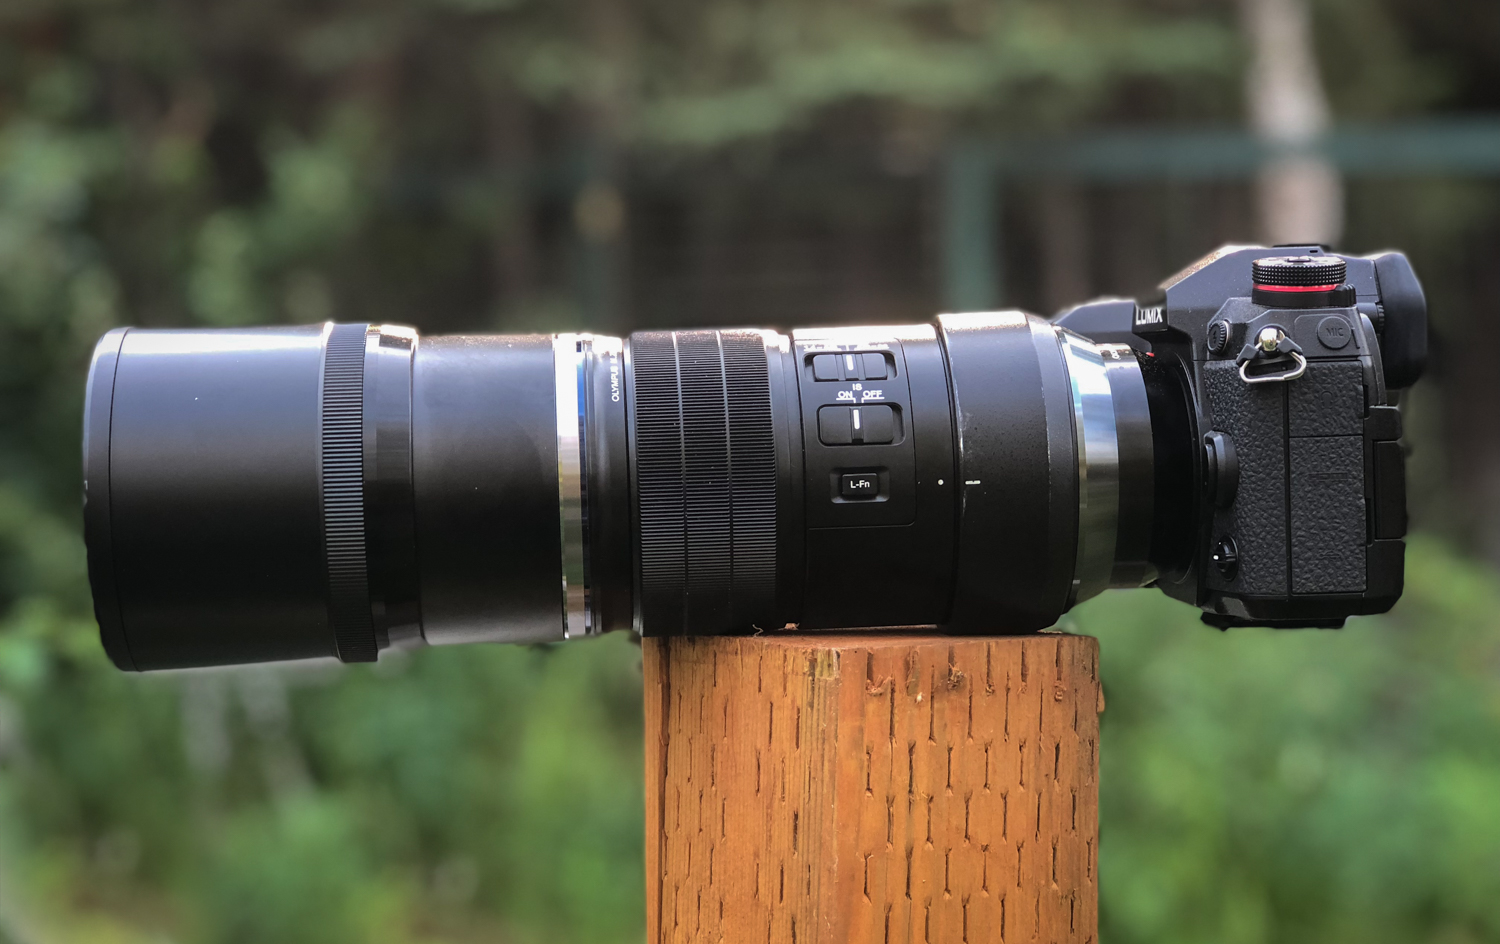 Review of the Olympus 300mm F4 PRO Lens